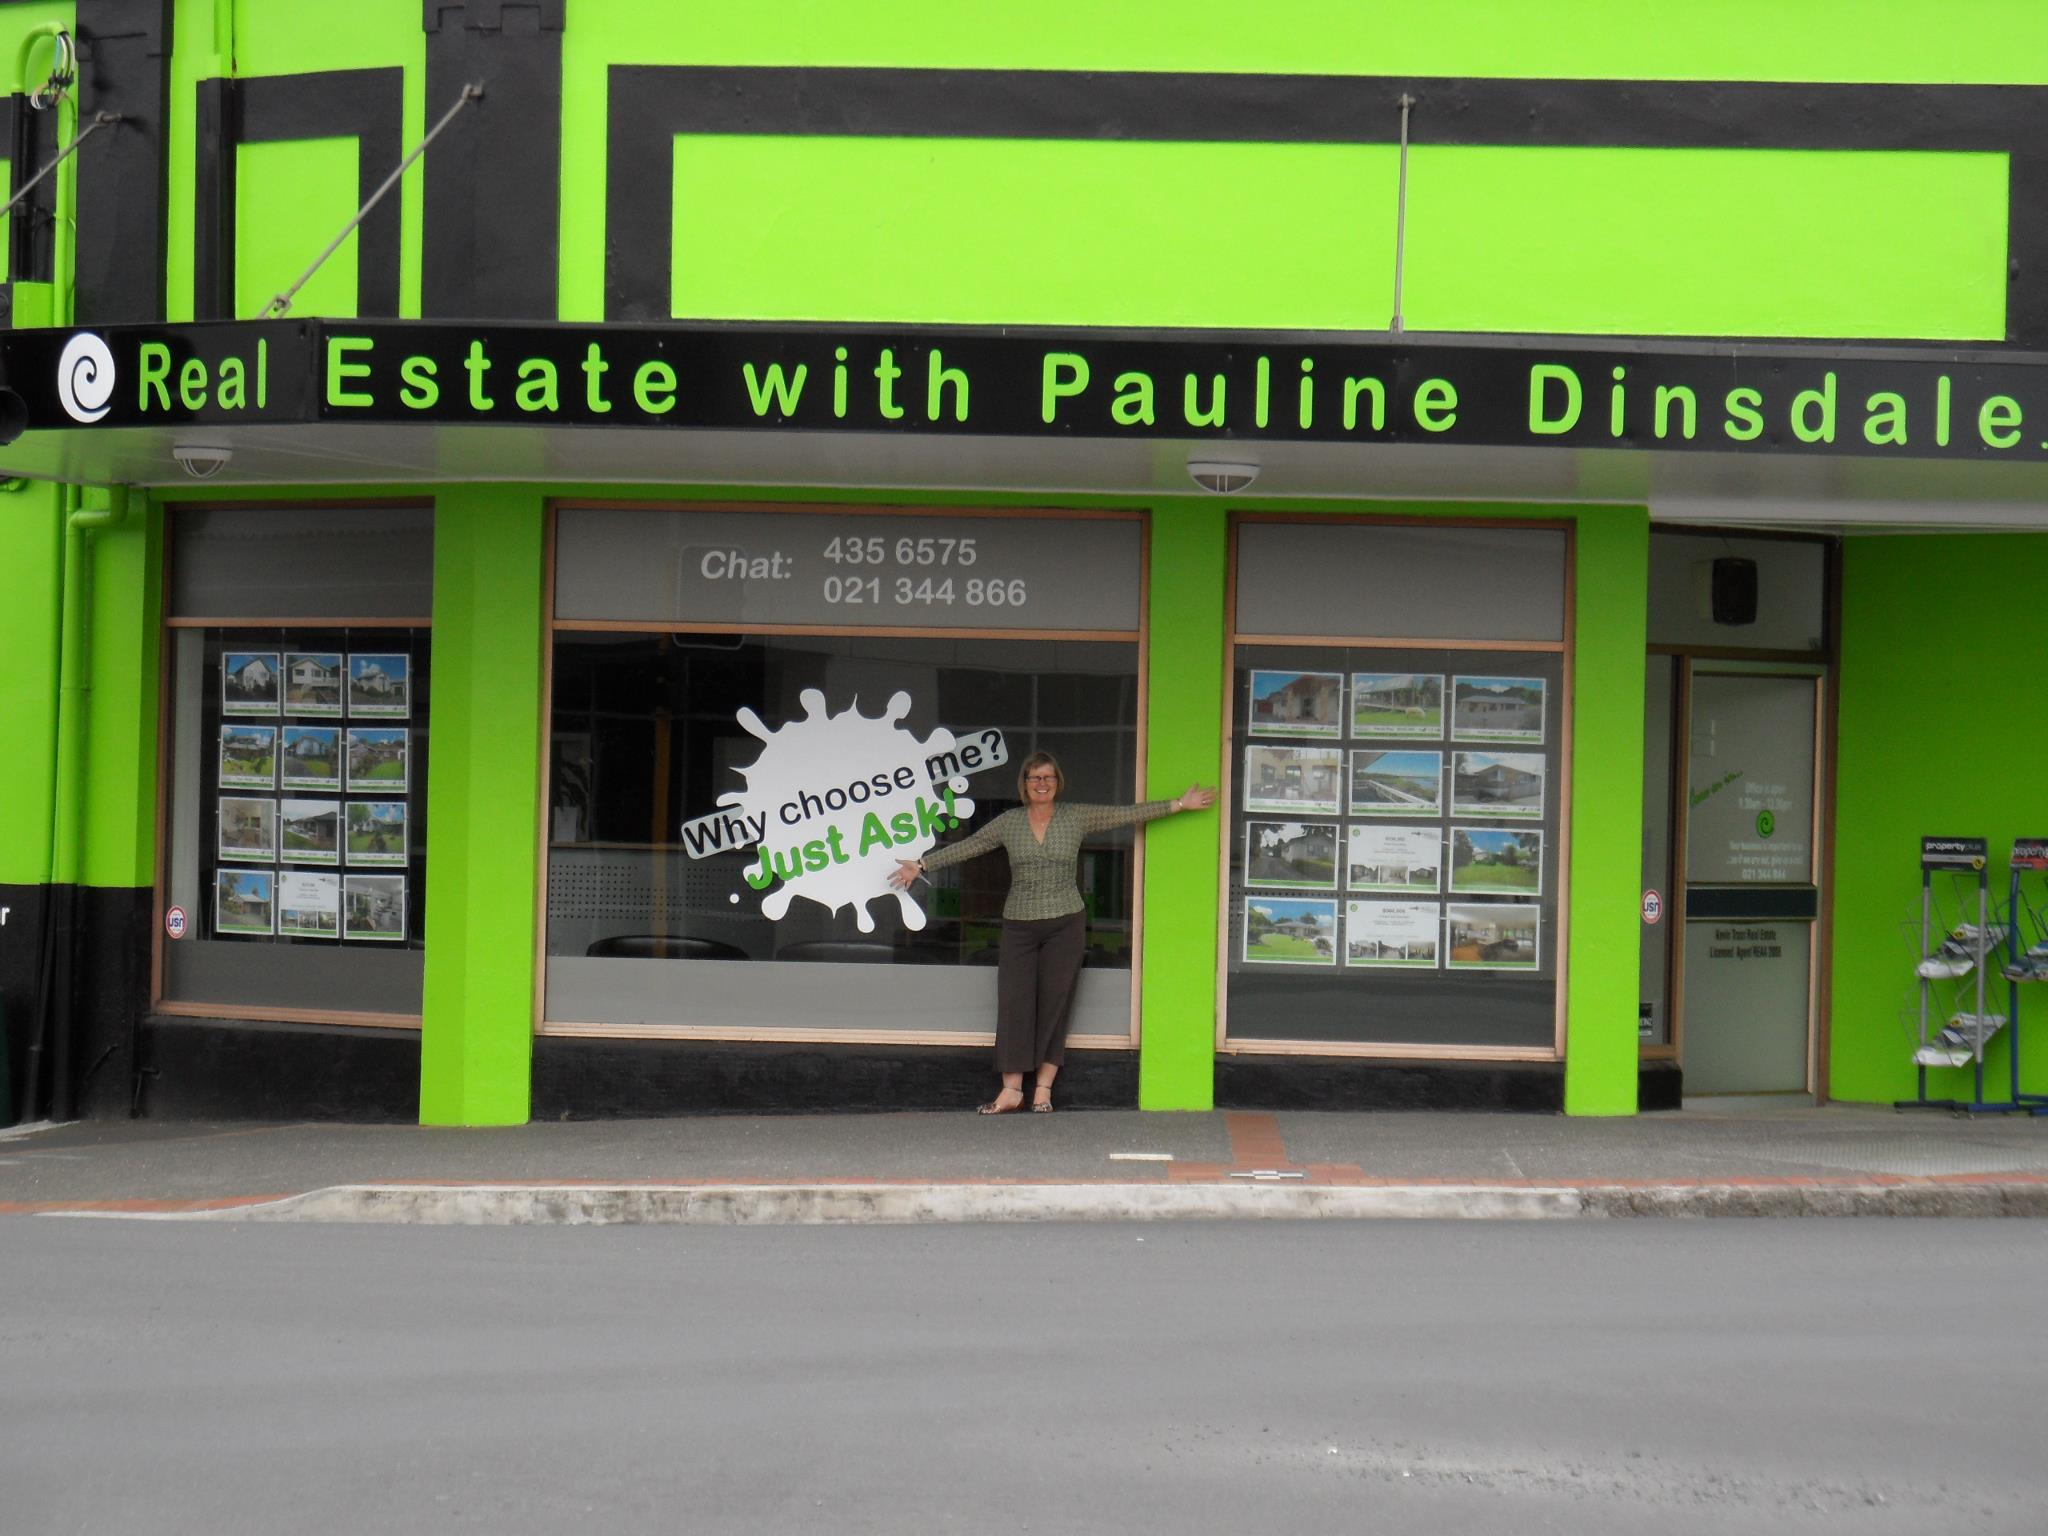 Real Estate with - Pauline Dinsdale